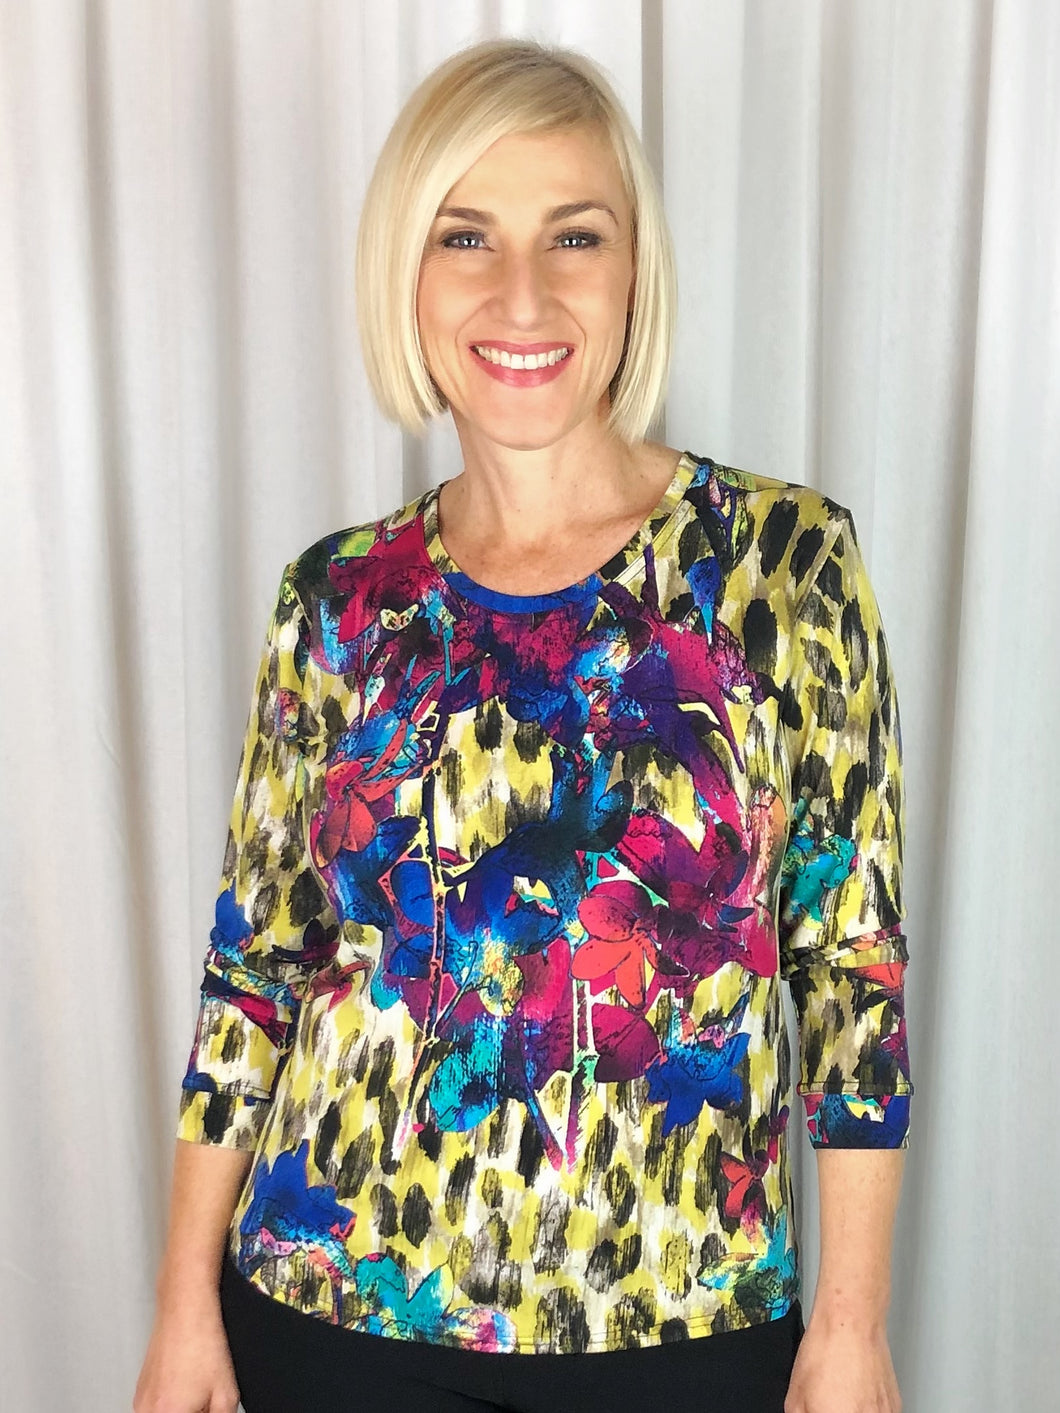 Sophisticated and elegant! Our Long Sleeve Garden Top made from a luxurious slinky jersey features a floral design in gold, royal and fuchsia tones. This stylish print looks great on its own or team it with a jacket in a co-ordinating colour to make it pop. Made in Australia from Polyester Spandex it washes and drip dries with no ironing required.